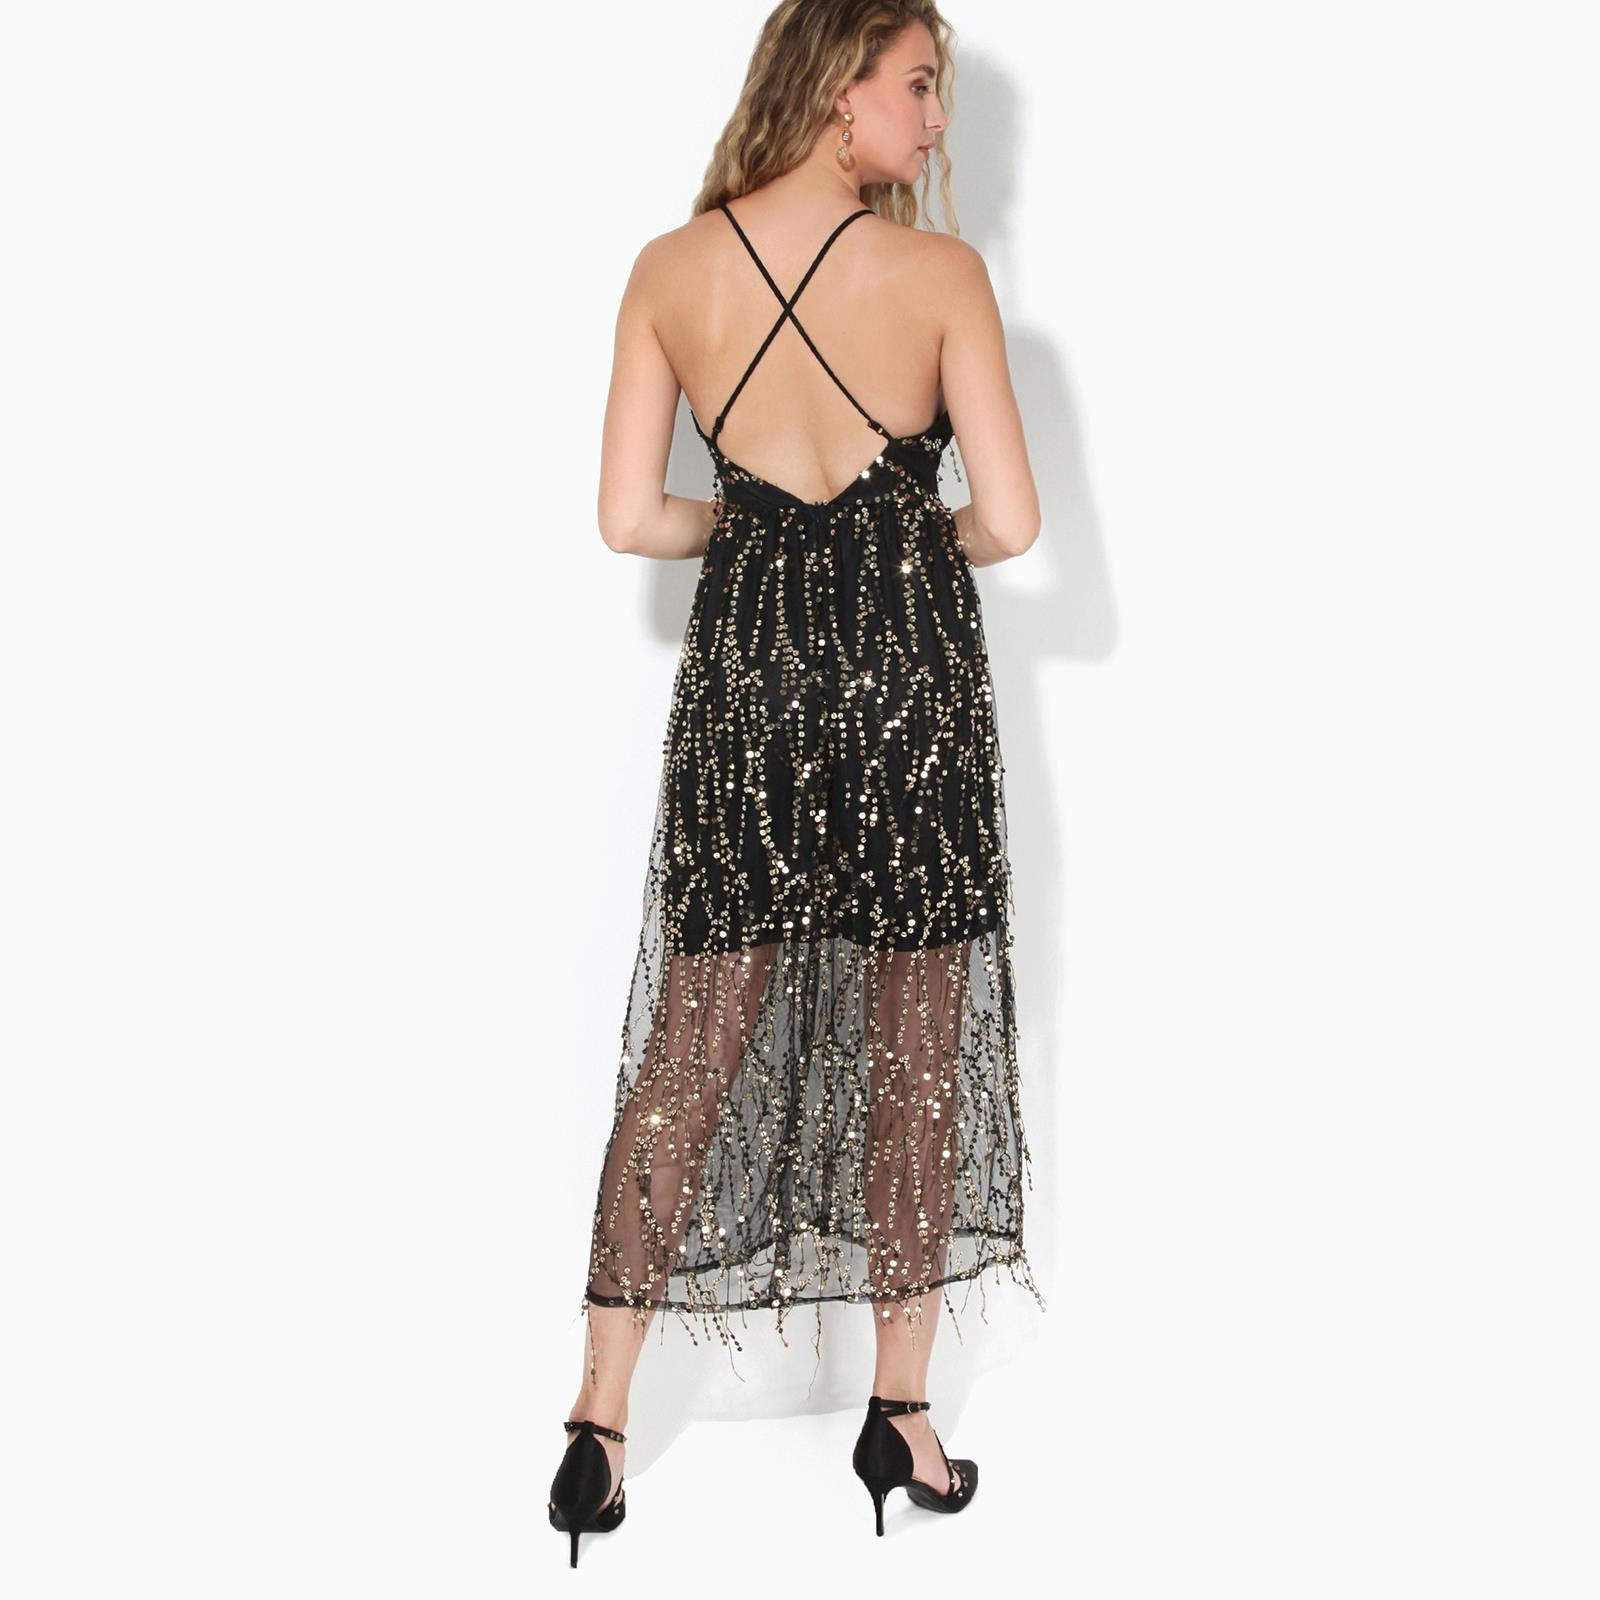 Womens-Ladies-Sequin-Dress-Midi-Party-Mesh-Fringe-Strappy-Evening-Backless thumbnail 7